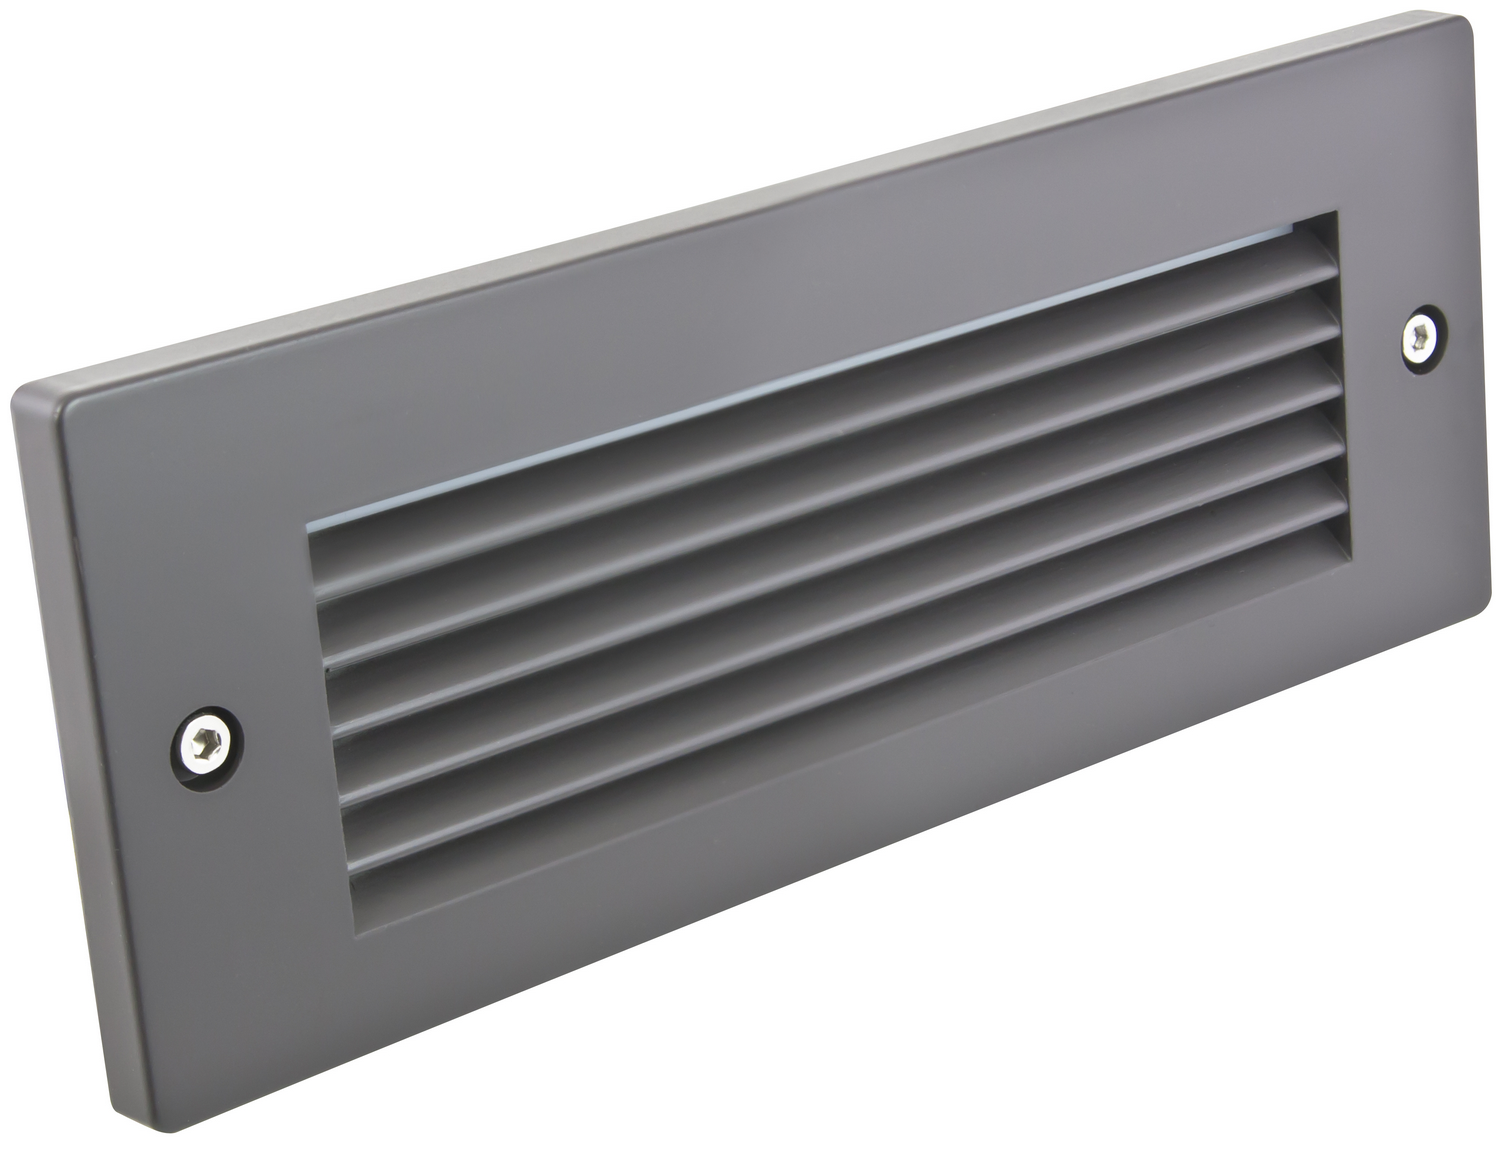 Brick Light Trim from the IndoorOutdoor LED Steplight collection by American Lighting BB HL DB